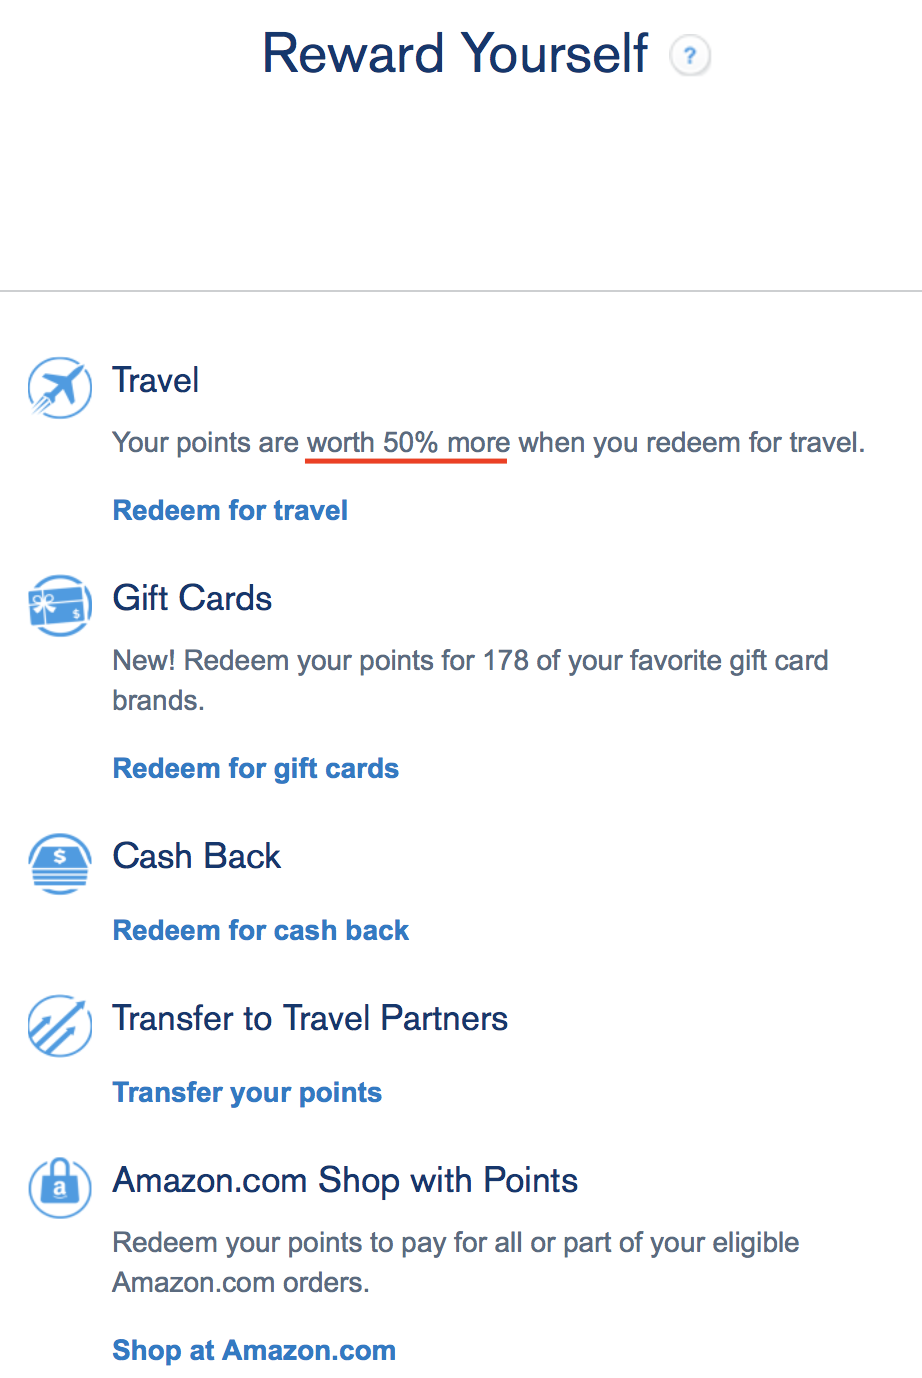 Chase Sapphire - With the Chase Sapphire Reserve you get a 50% point bonus when booking through the portal. You get a 25% point bonus with the Sapphire Preferred. Another reason why the Reserve is a better option than the Preferred for most people.